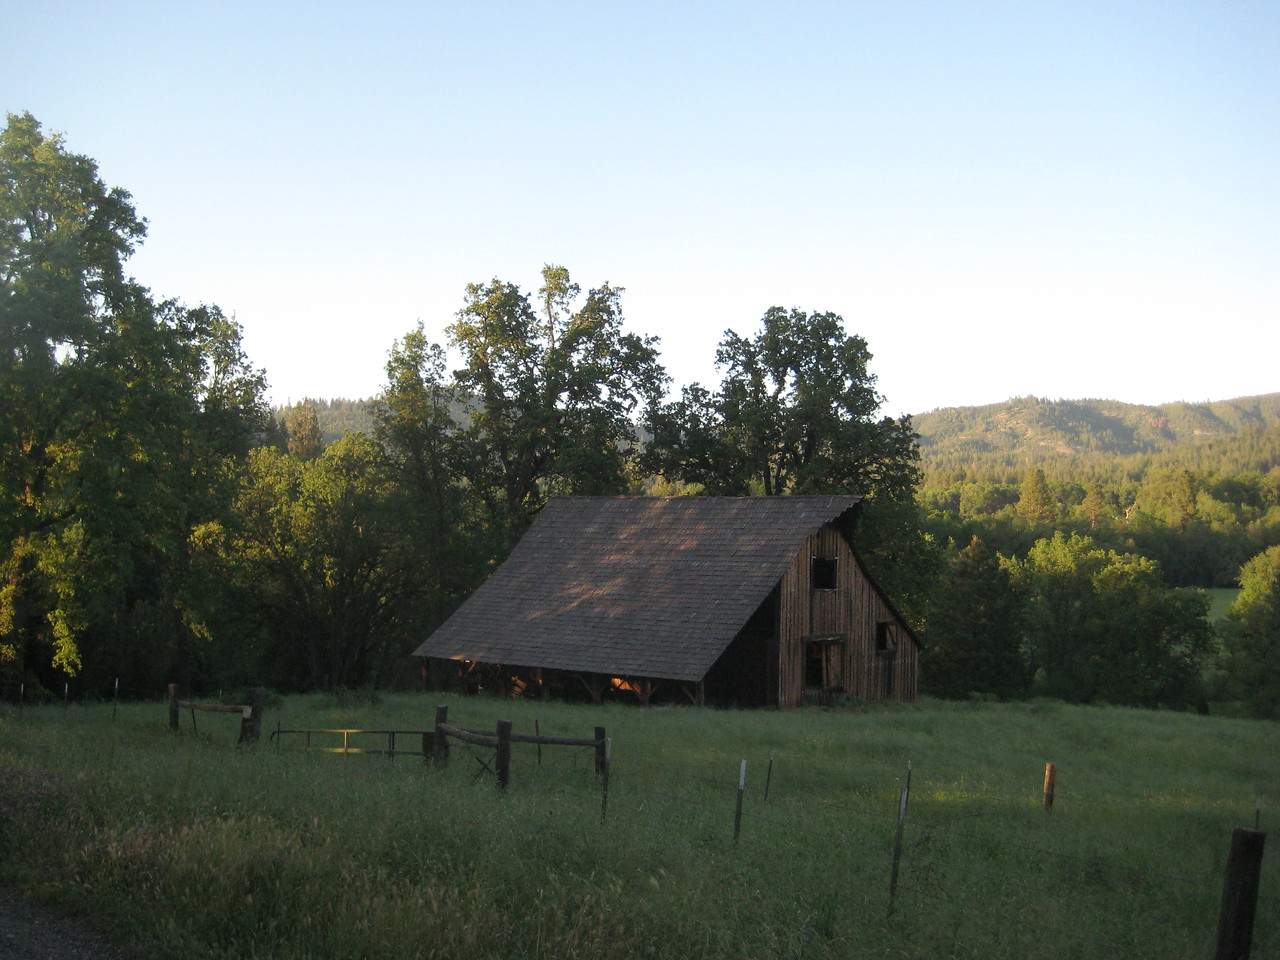 Barn used in Little House on the Prairie.